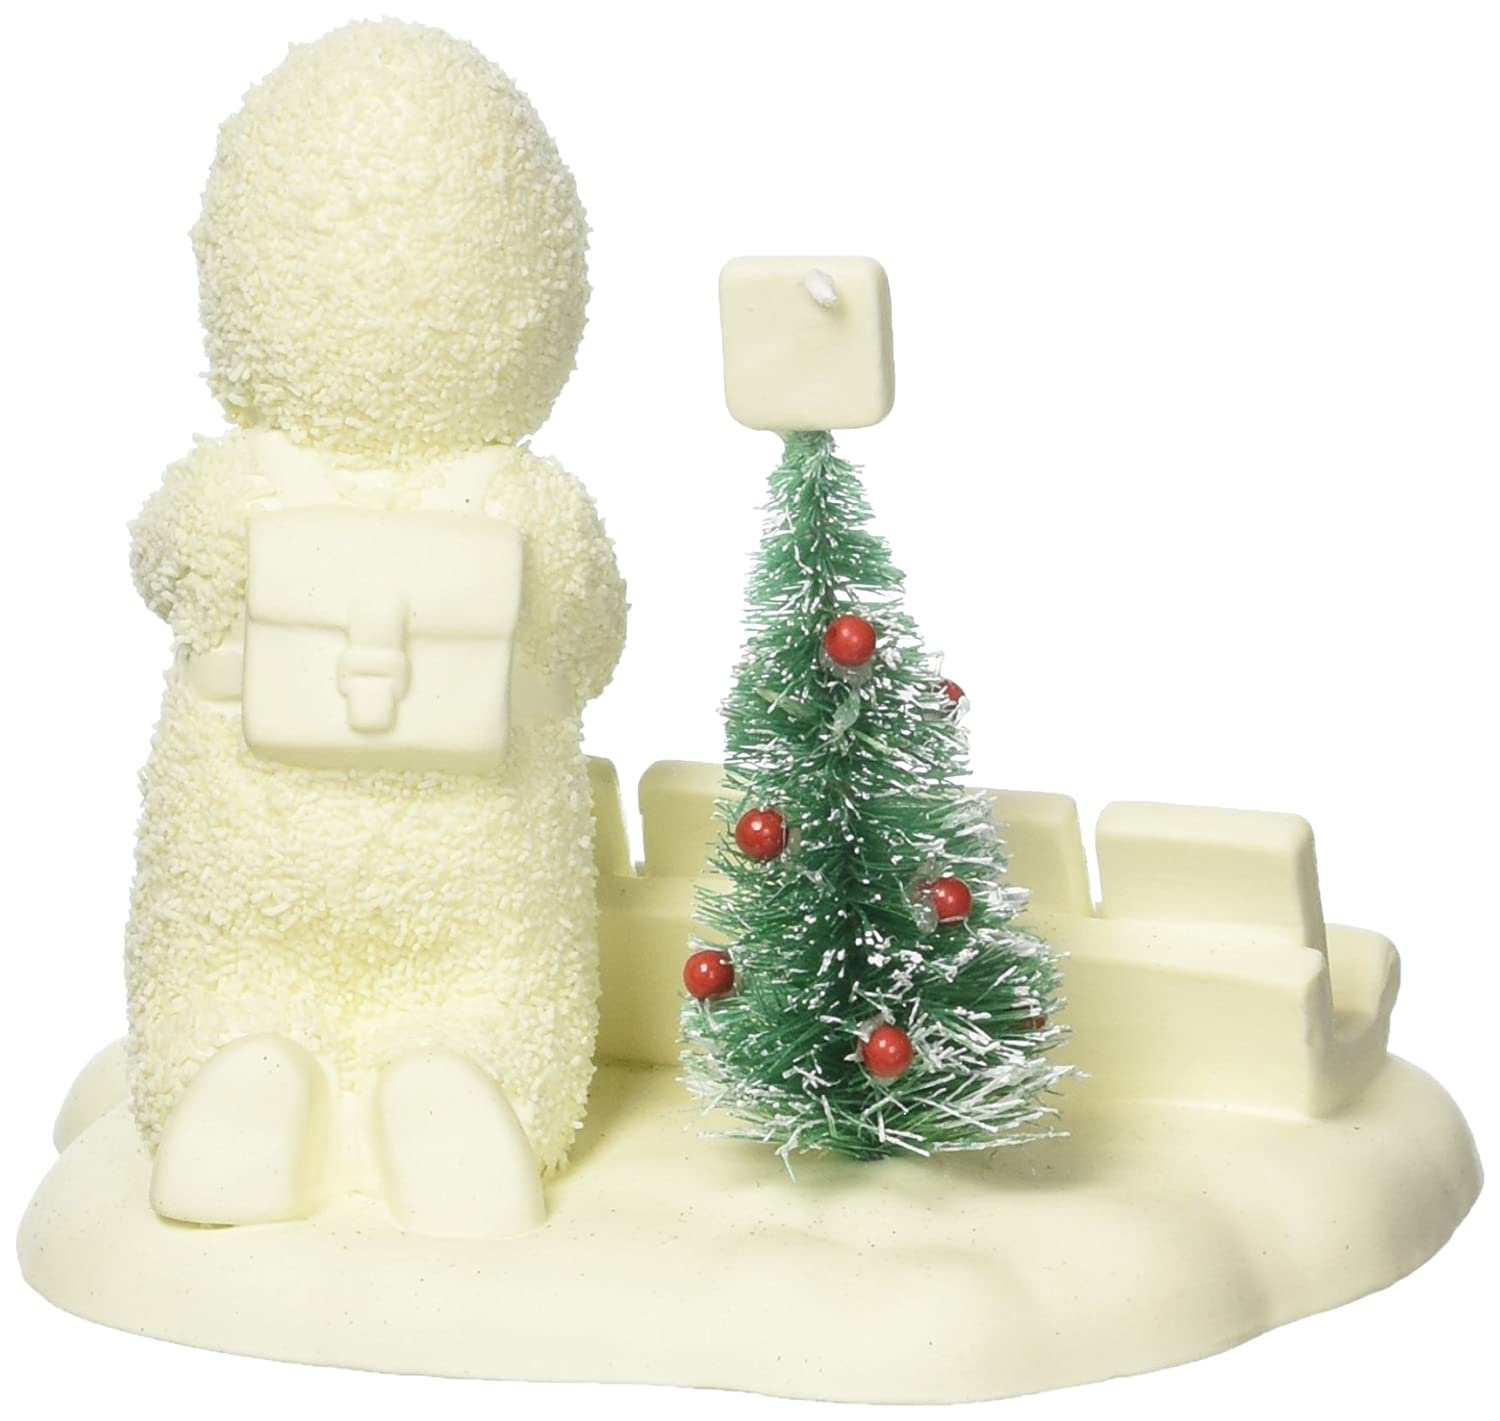 Department 56 Snowbabies Christmas Scrabble Porcelain Figurine, 3.4